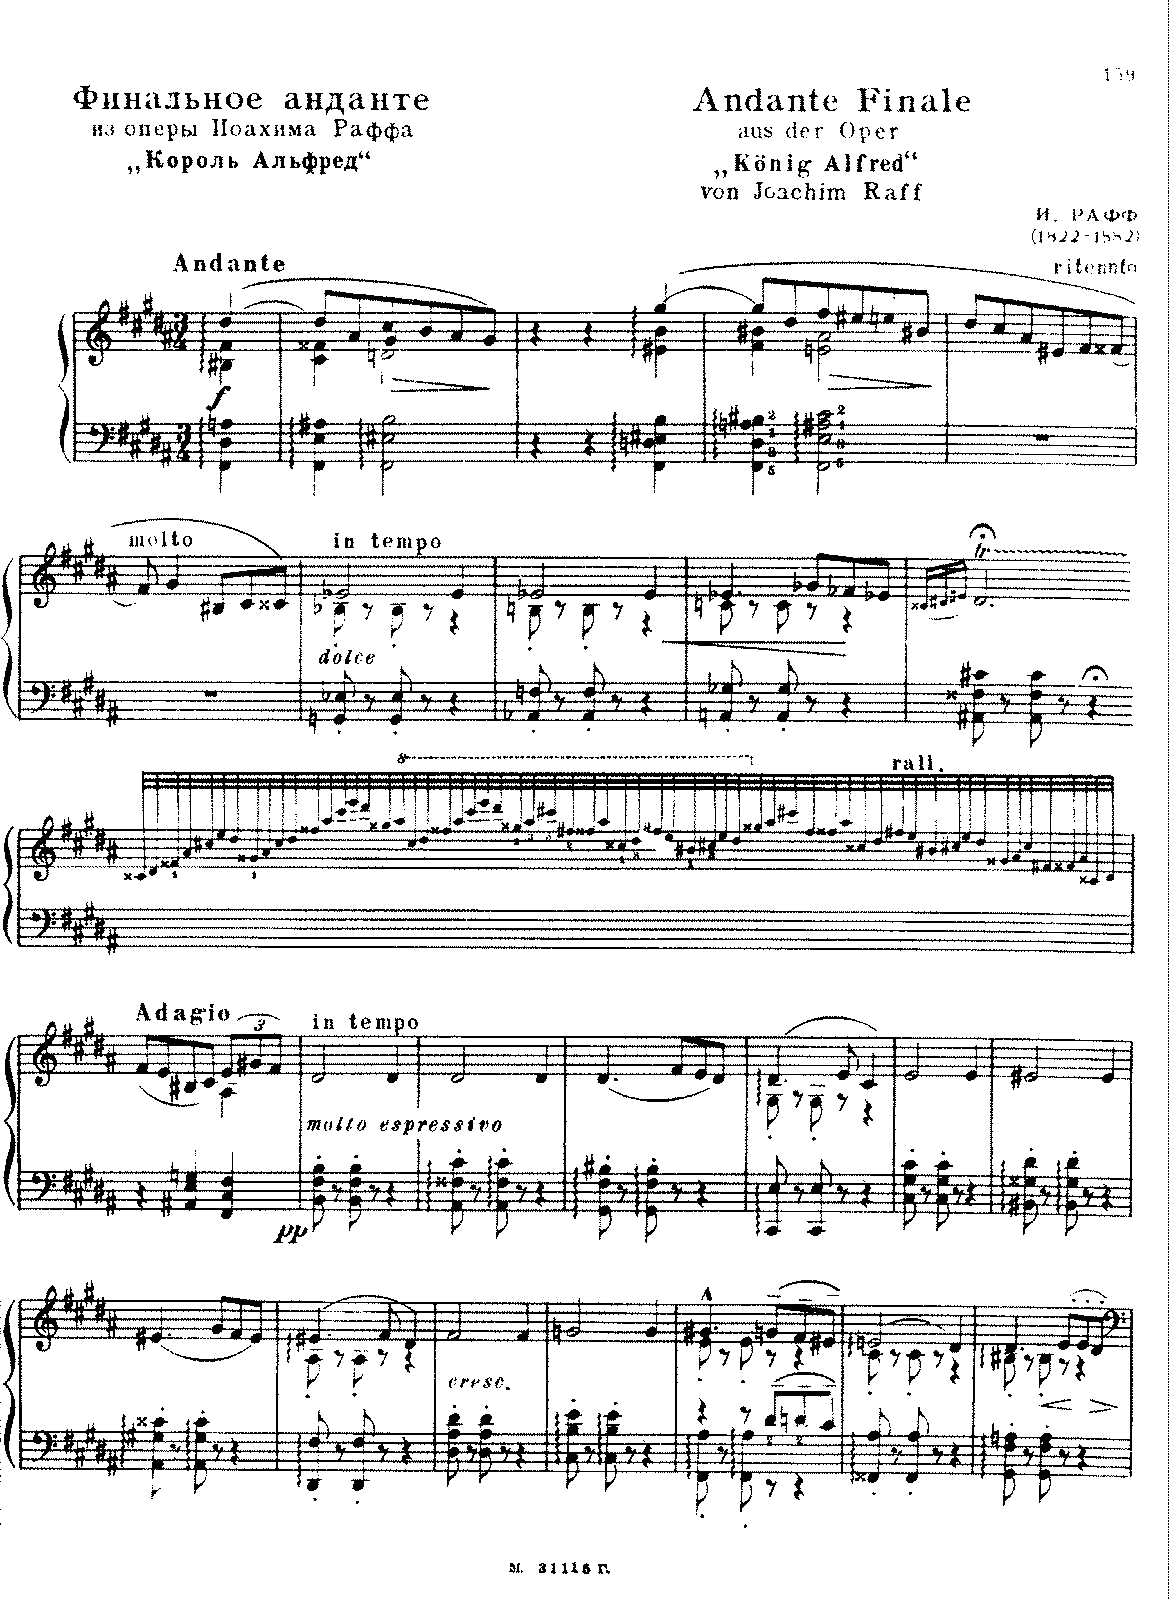 Liszt - S.421 - Anante Finale & March from the Opera, Alfred Koenig (Raff).pdf